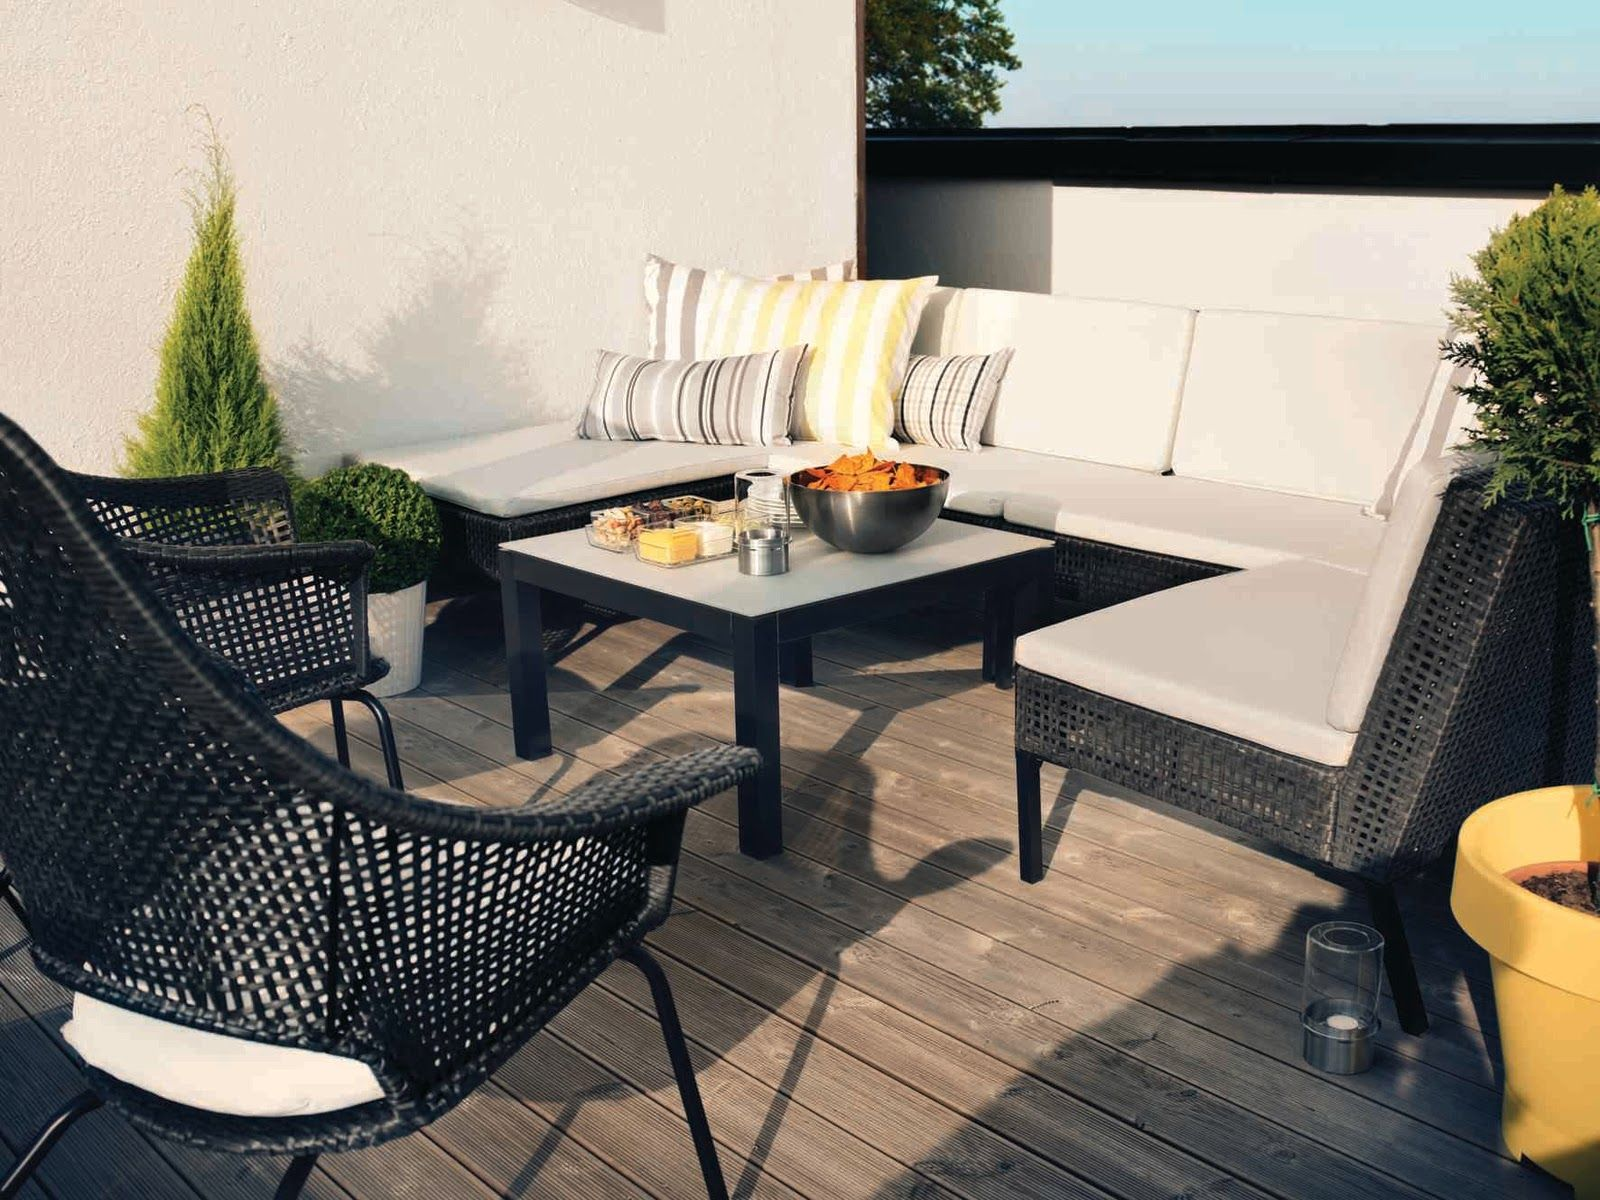 Ikea Ammero Deck Dining Room Spring Fever